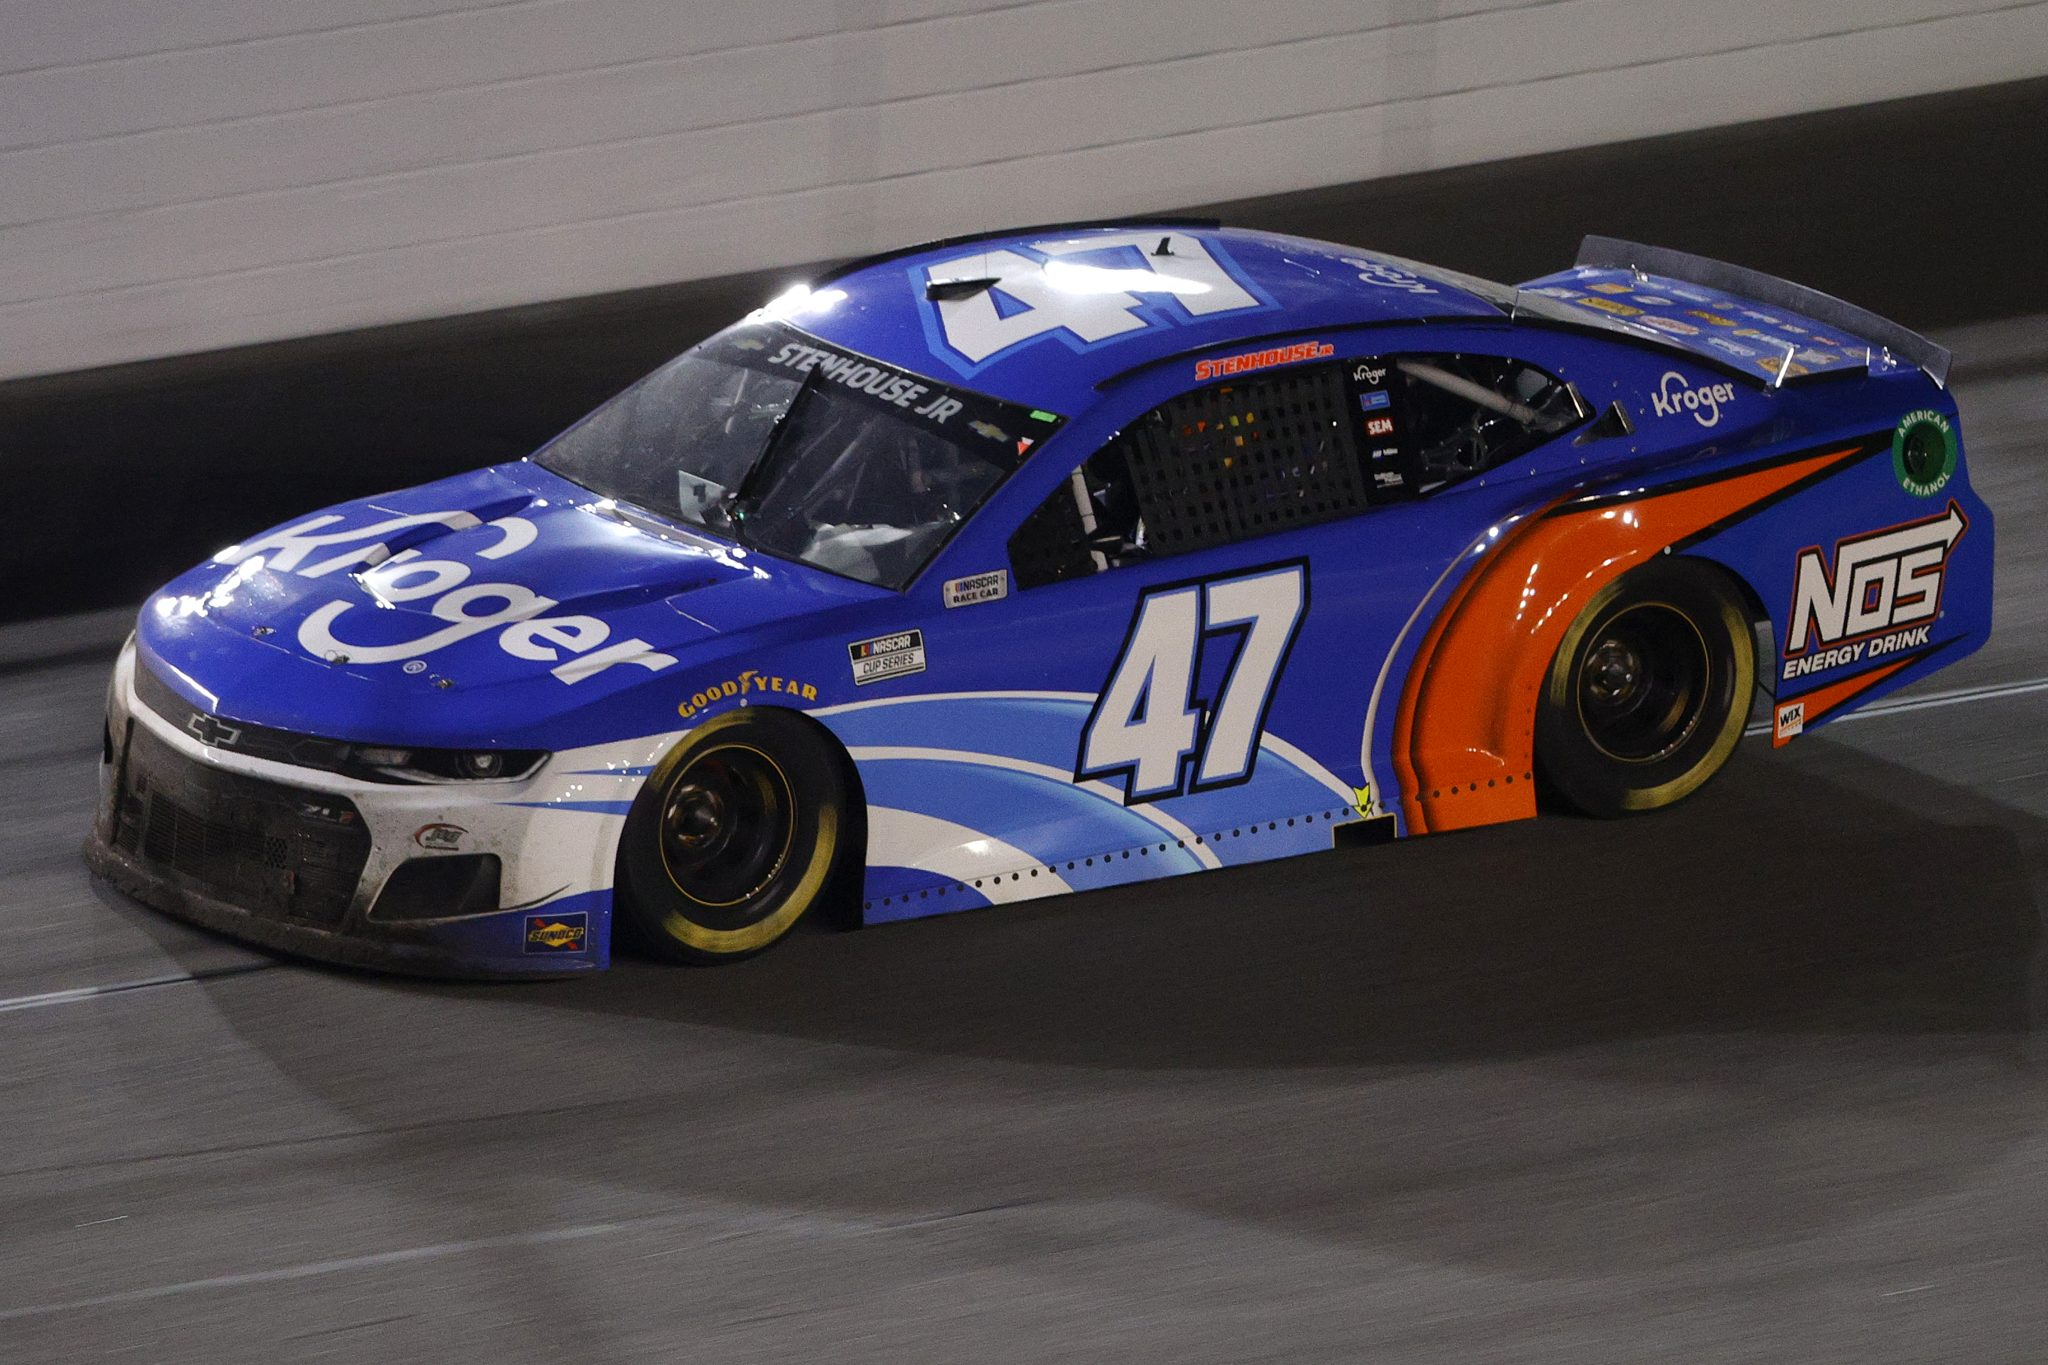 DAYTONA BEACH, FLORIDA - FEBRUARY 09: Ricky Stenhouse Jr., driver of the #47 Kroger/NOS Energy Drink Chevrolet, drives during the NASCAR Cup Series Busch Clash at Daytona at Daytona International Speedway on February 09, 2021 in Daytona Beach, Florida. (Photo by Chris Graythen/Getty Images) | Getty Images